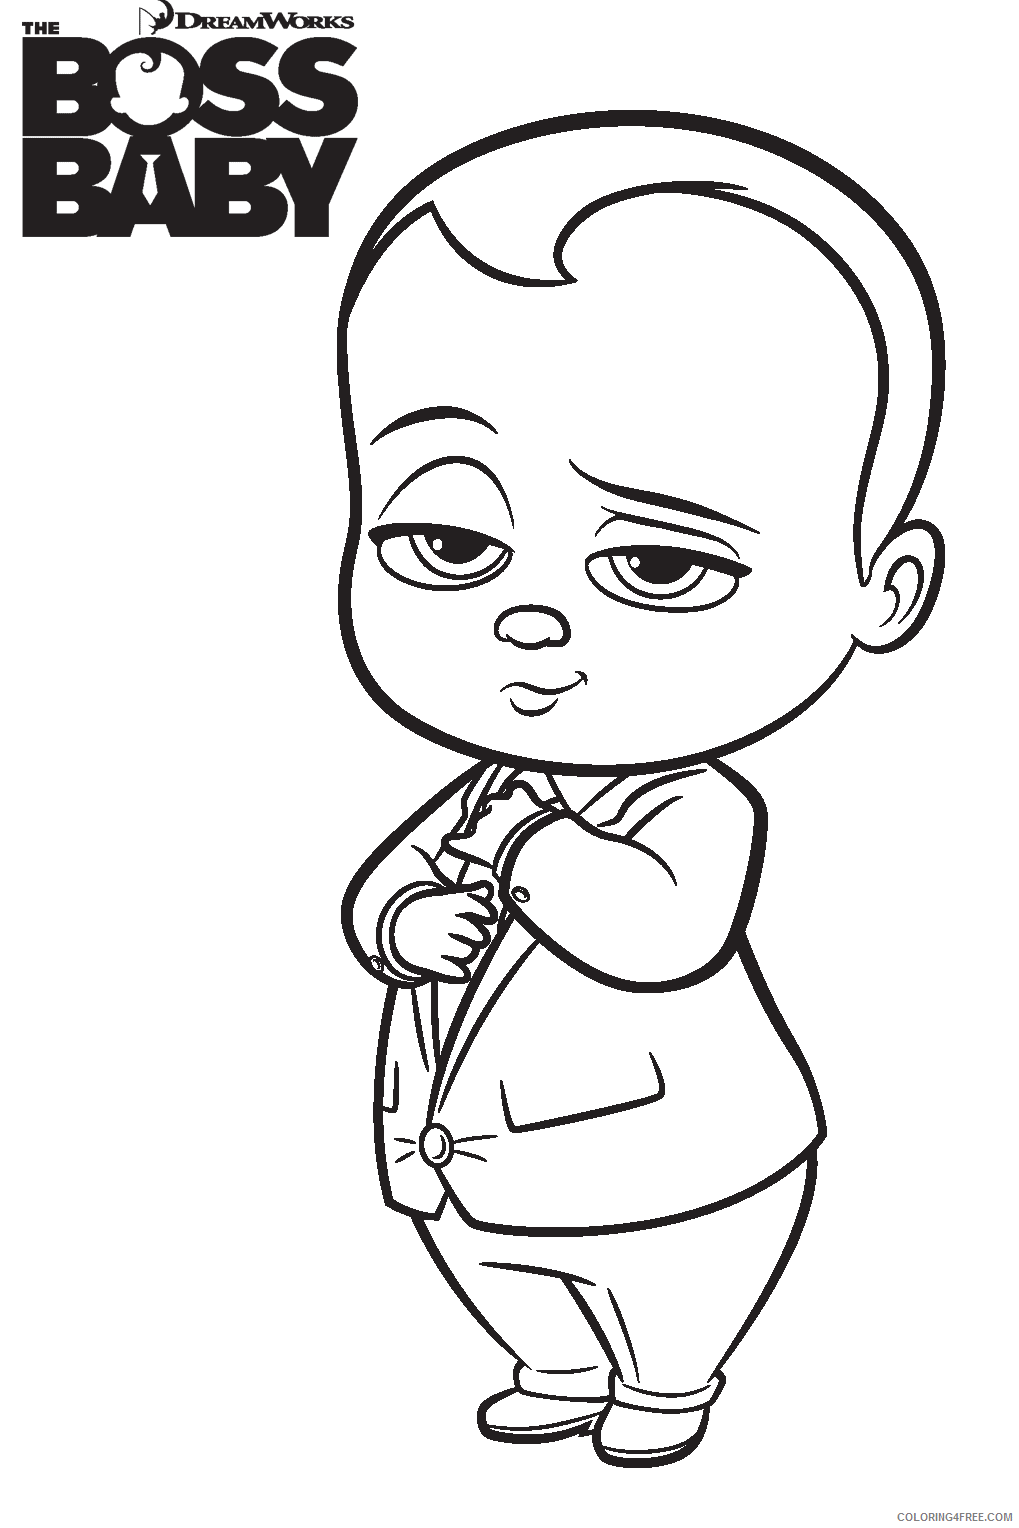 Boss Baby Coloring Pages TV Film boss baby a4 Printable 2020 01250 Coloring4free